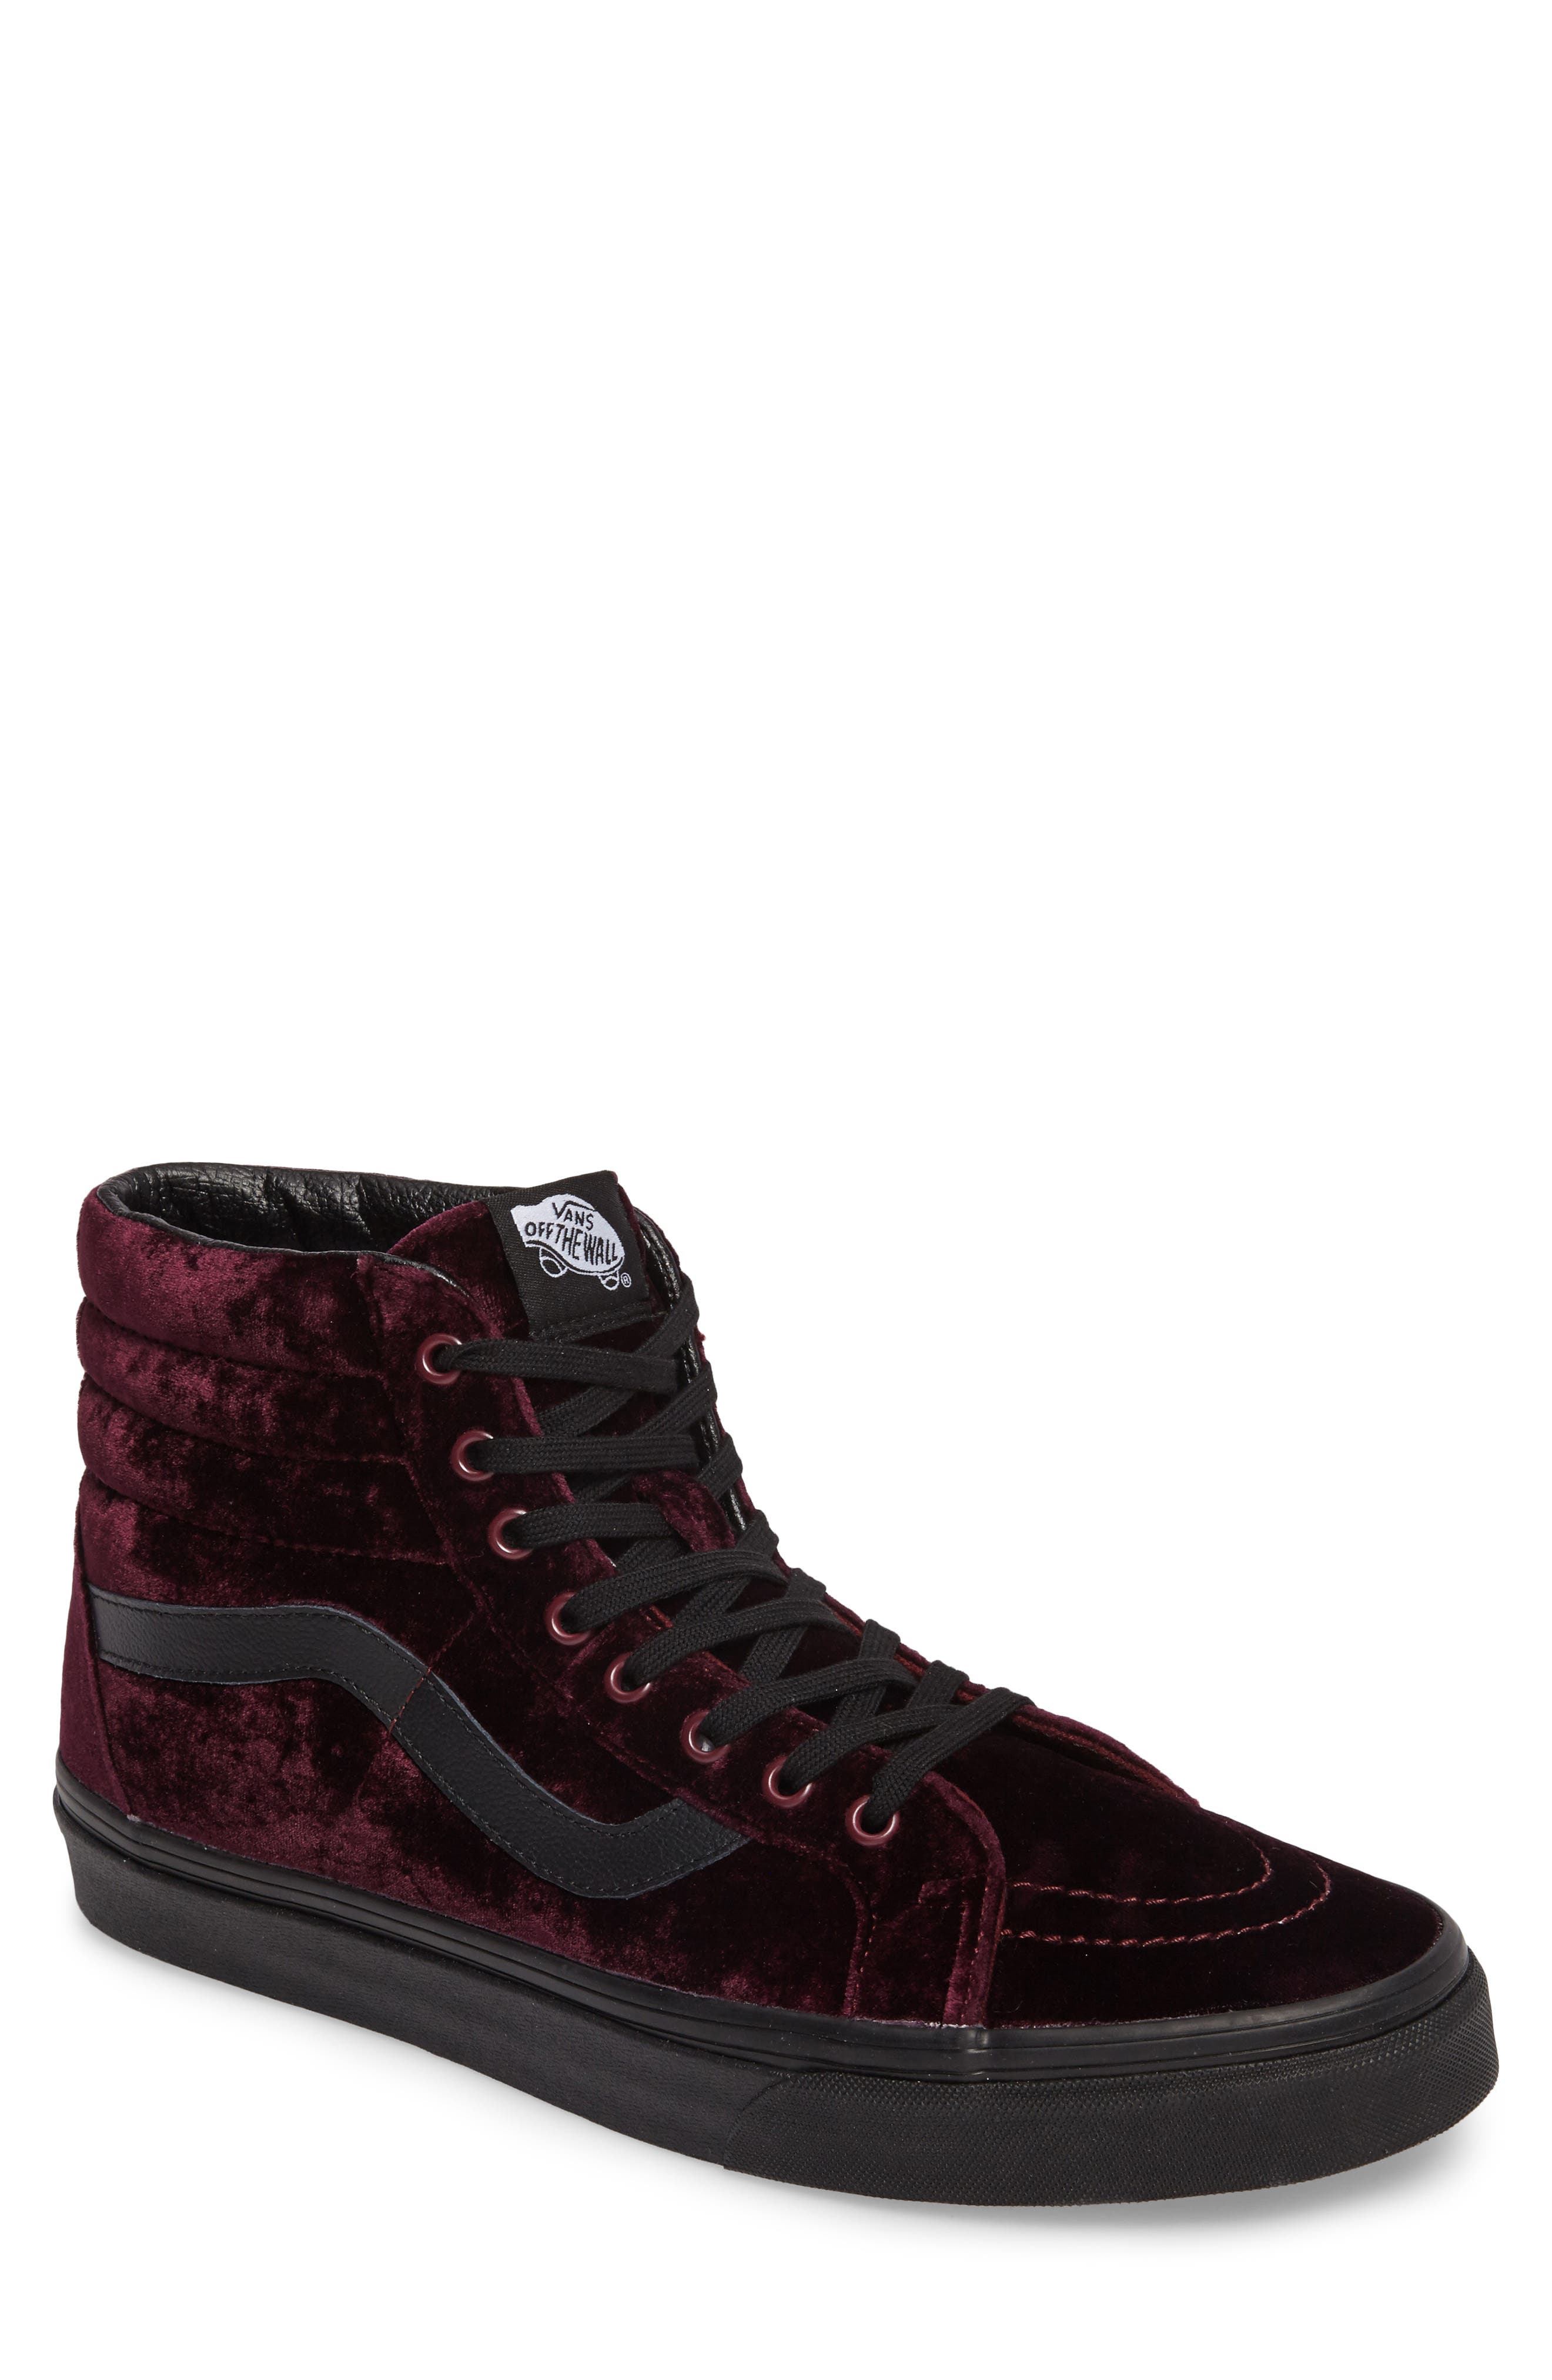 Vans SK8-Hi Reissue High Top Sneaker (Men)